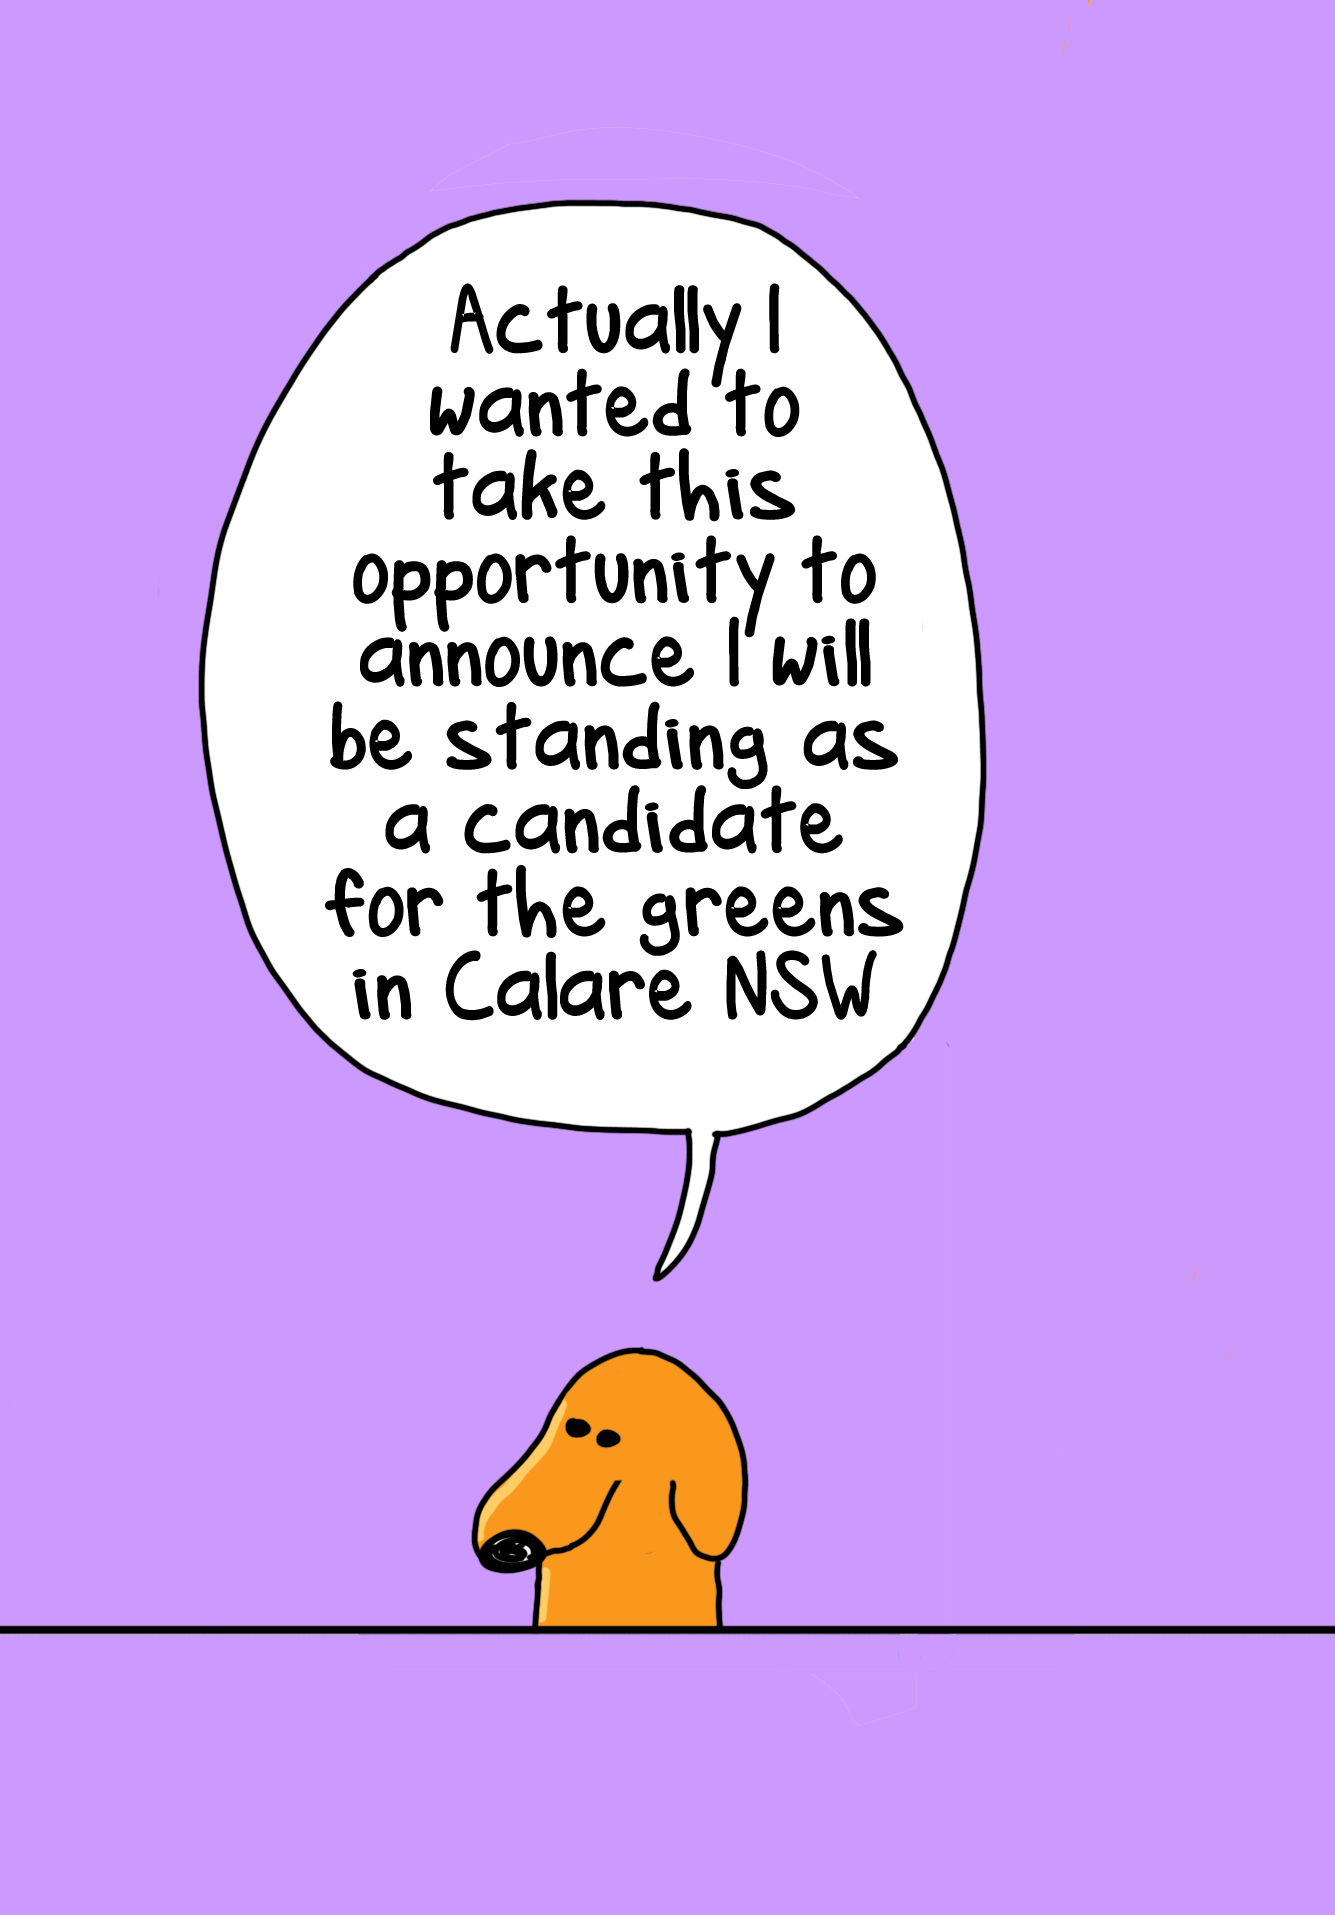 Cartoon announcing candidacy for the Greens in Calare NSW